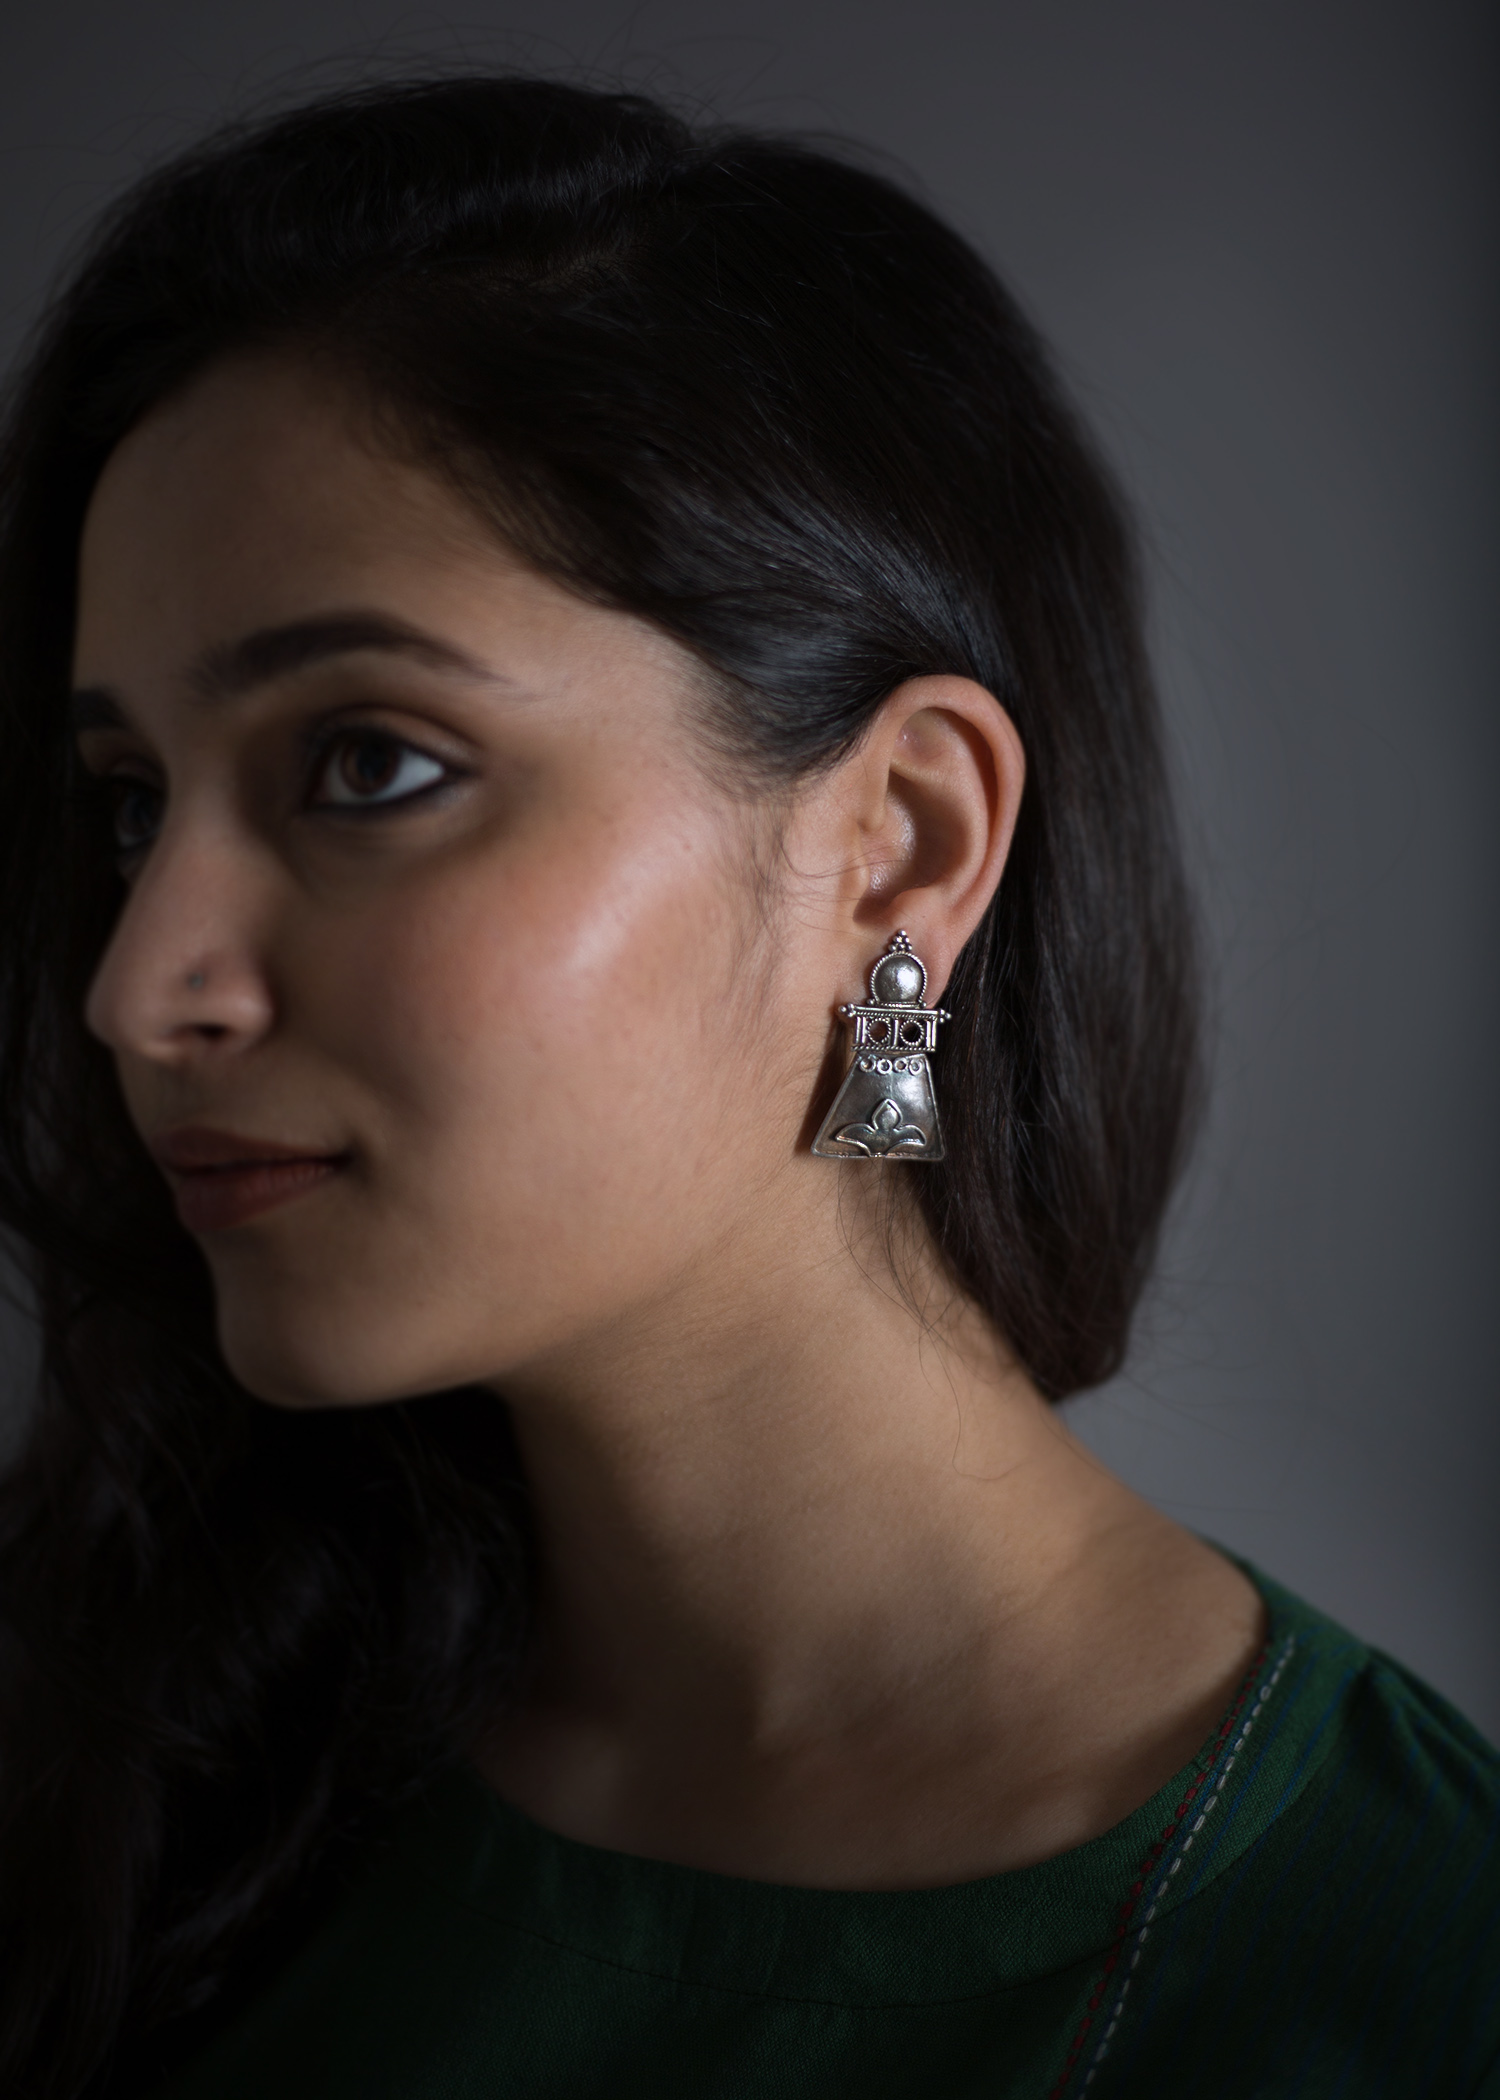 The Harappa Earrings